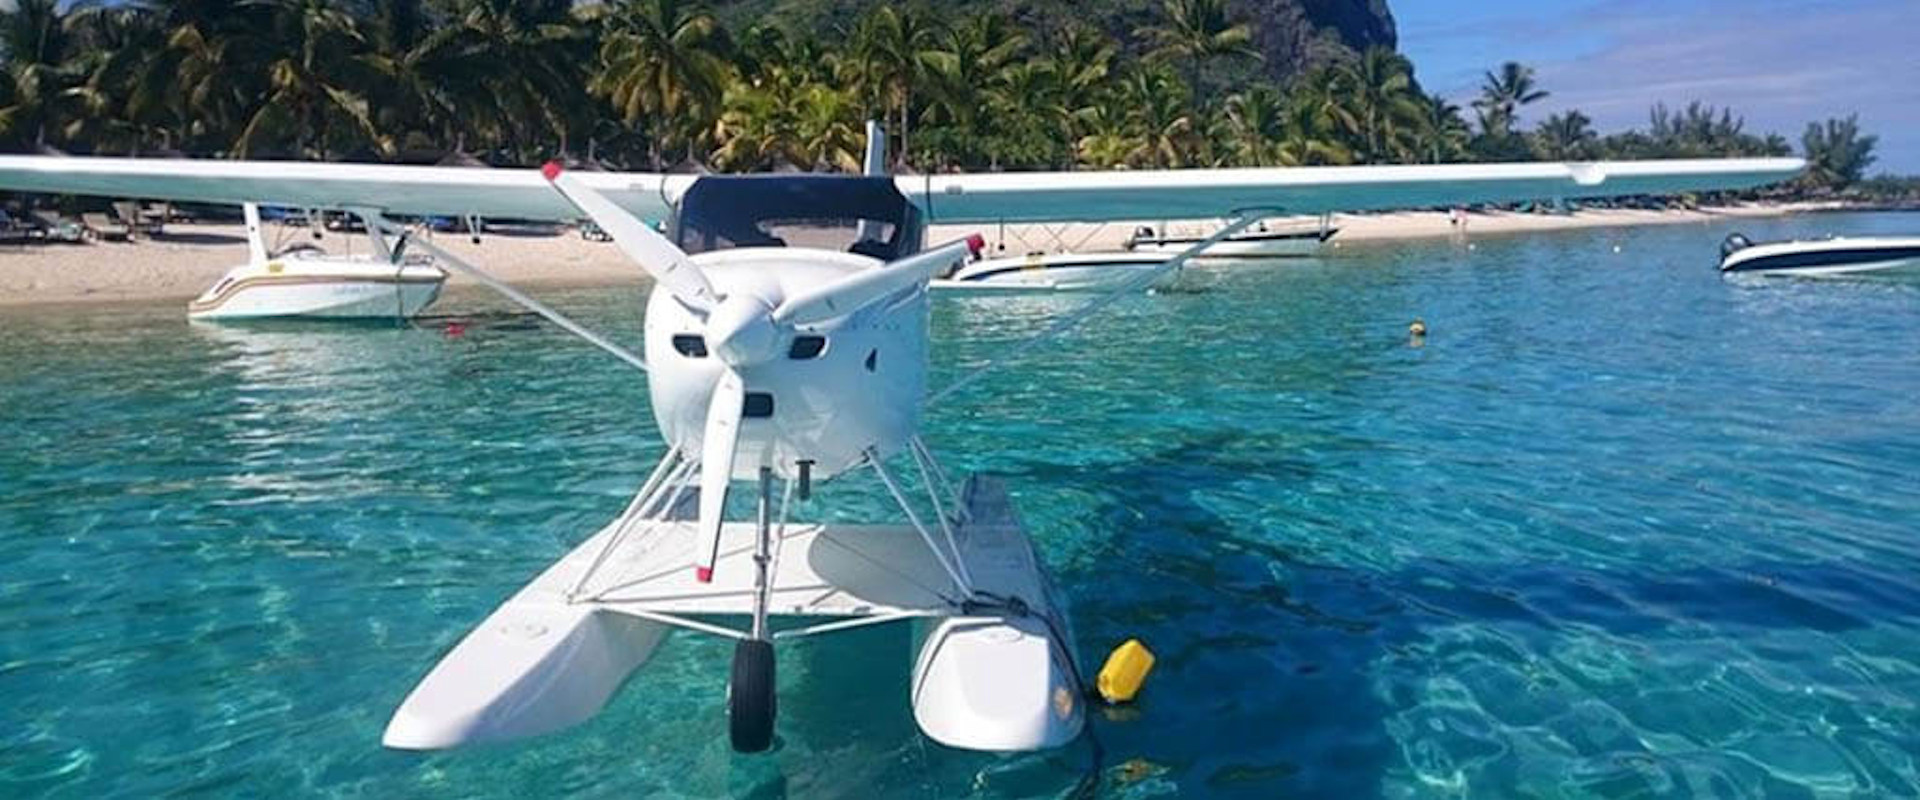 Amphibious aircraft in Mauritius